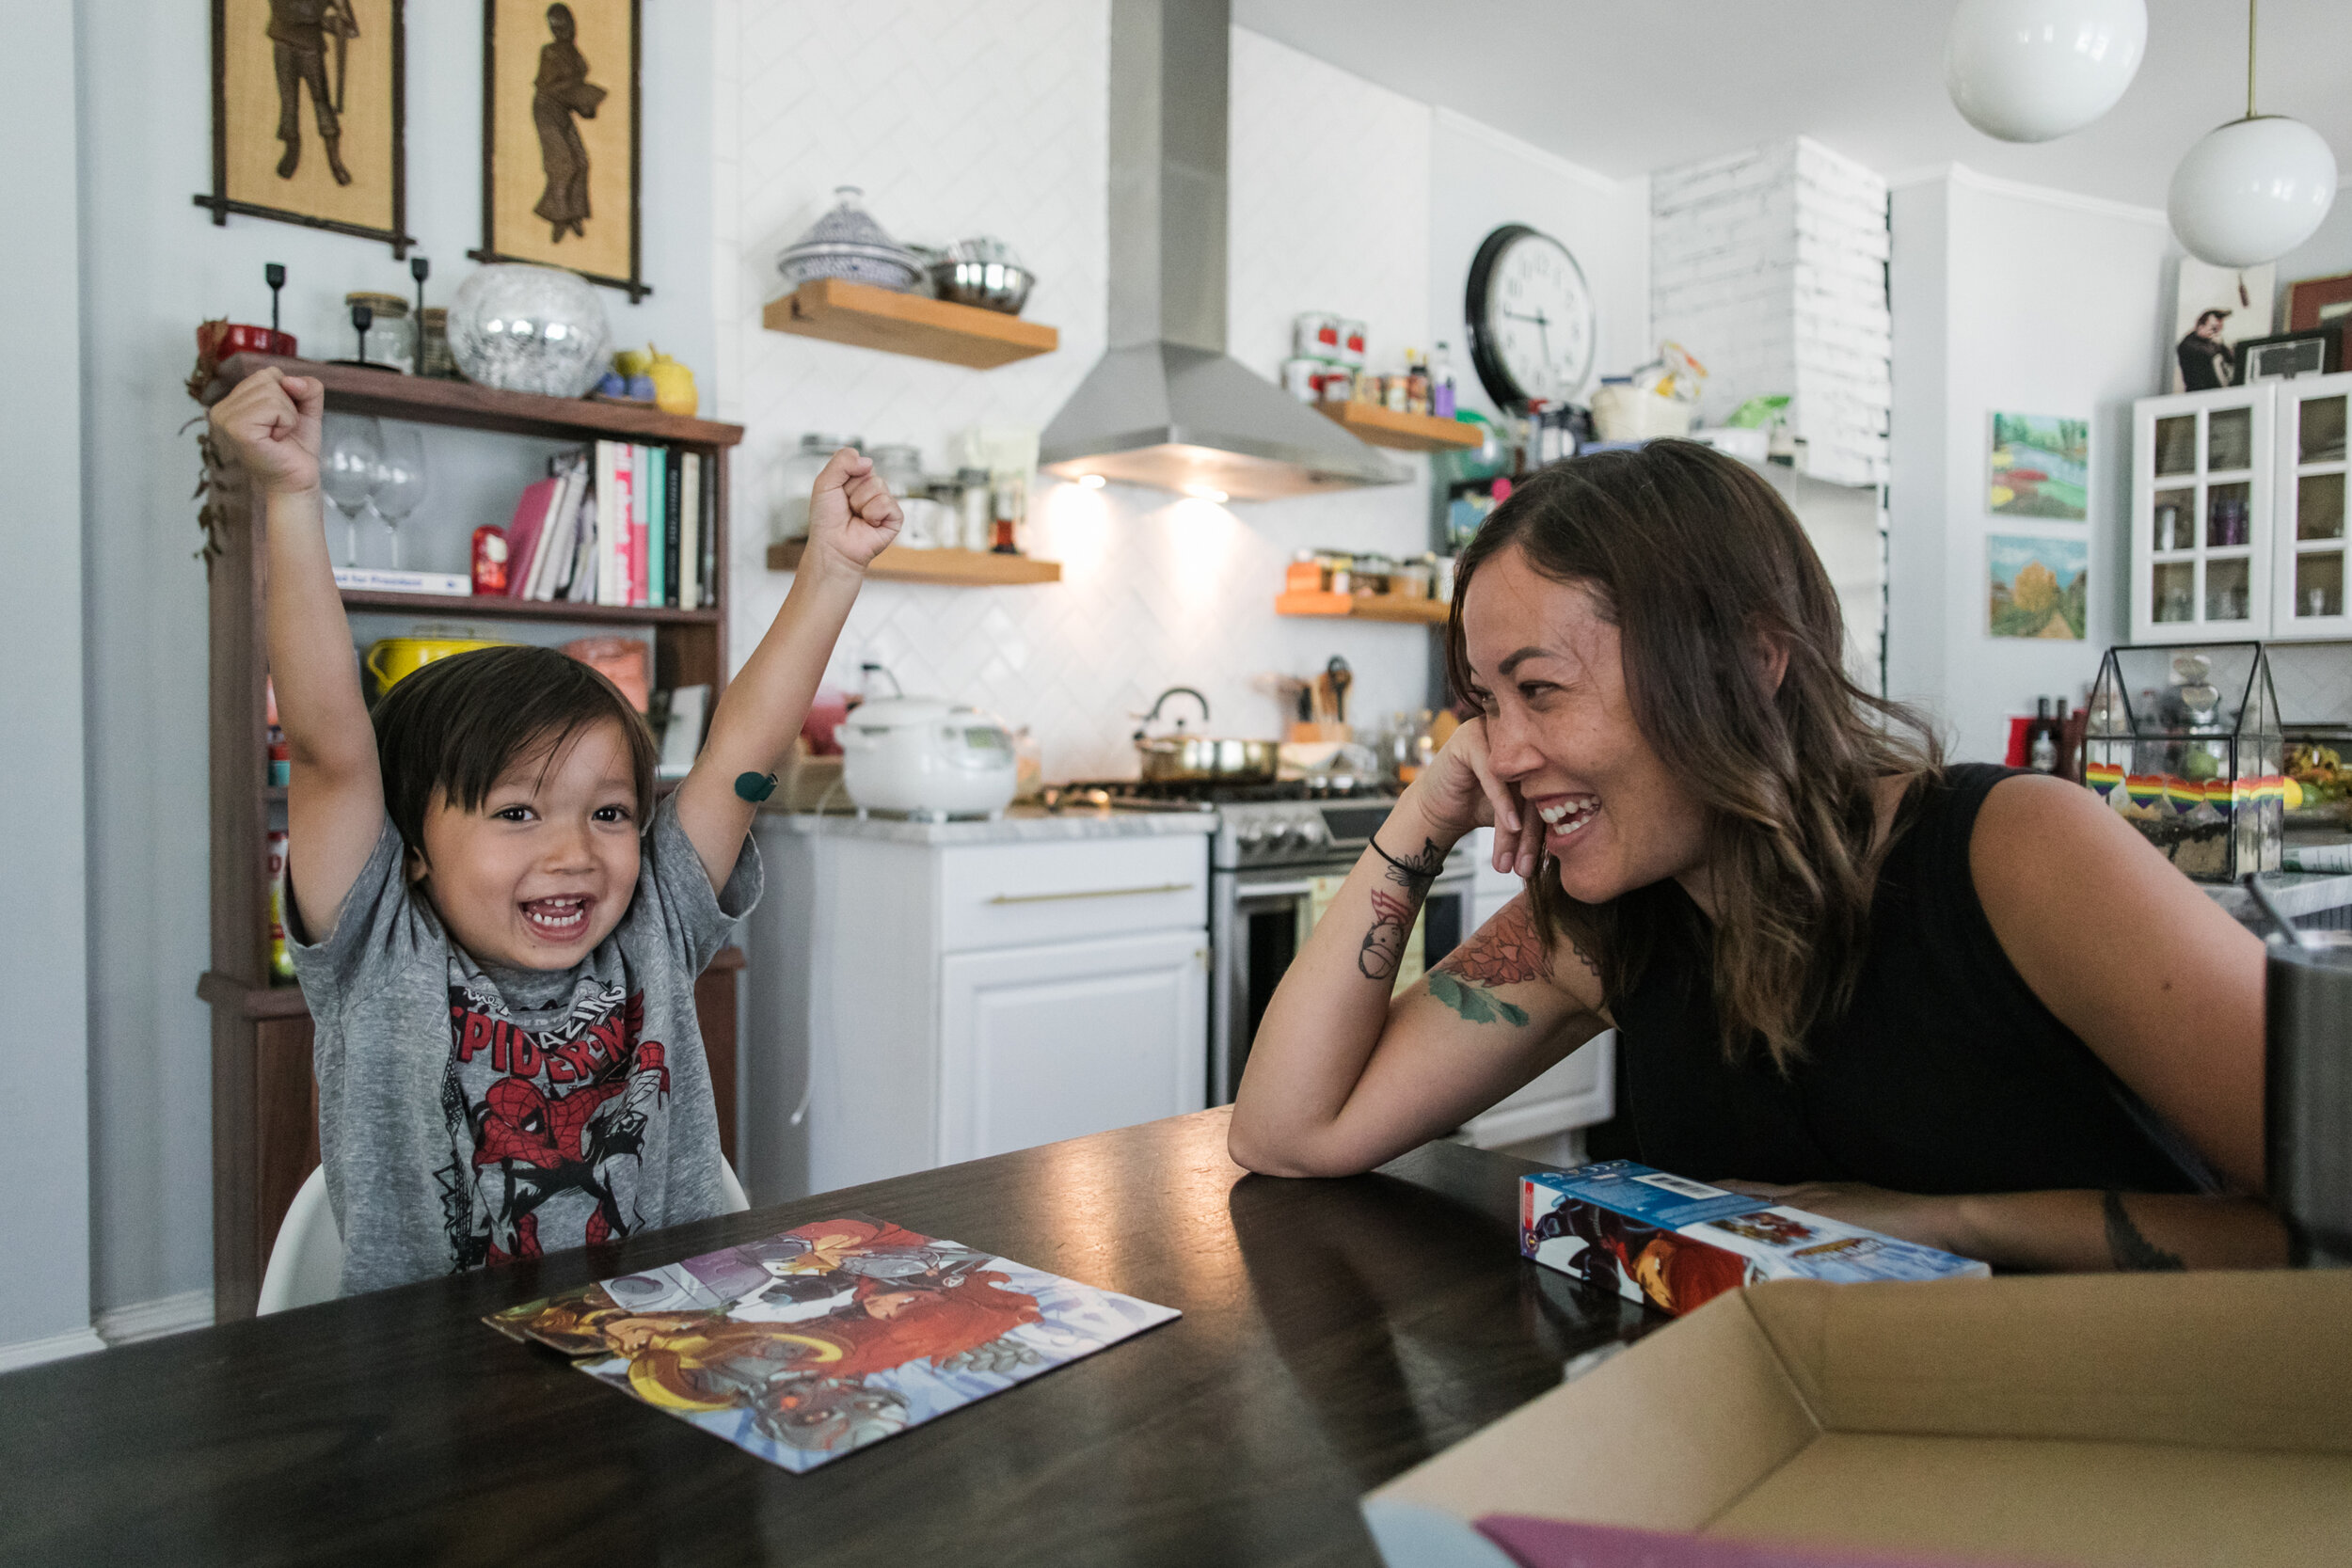 image of a mom smiling at her son who has his arms up in triumph after finishing a puzzle from a day in the life photography session